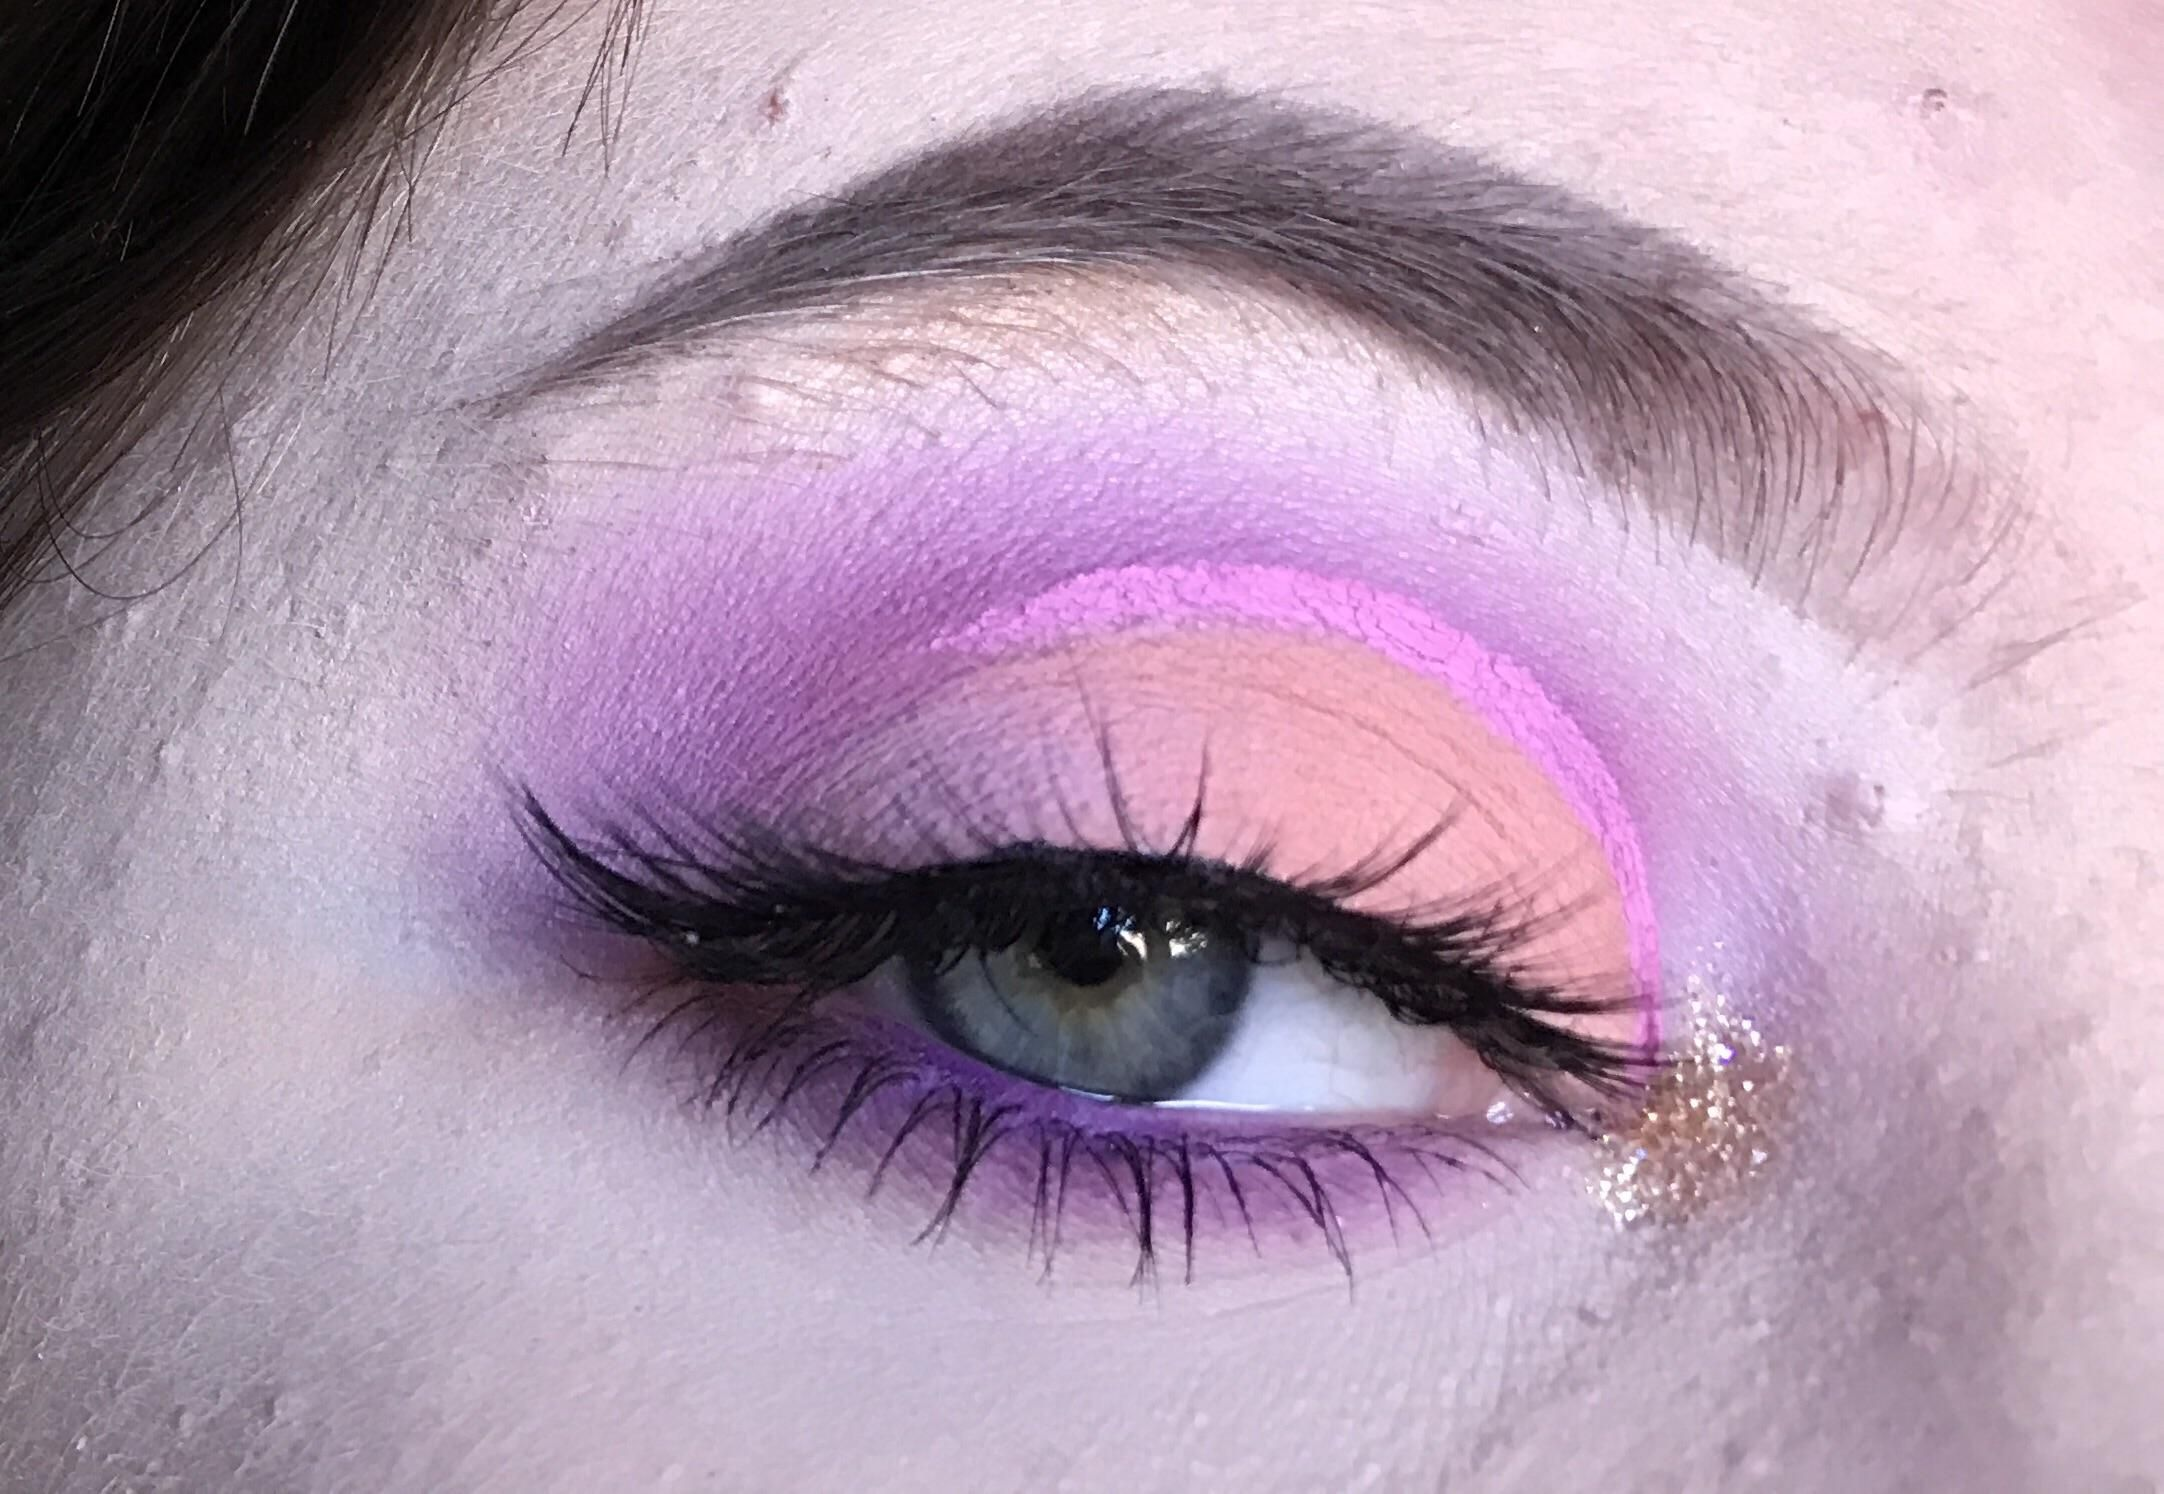 Finally got to play with the KVD Pastel Goth palette